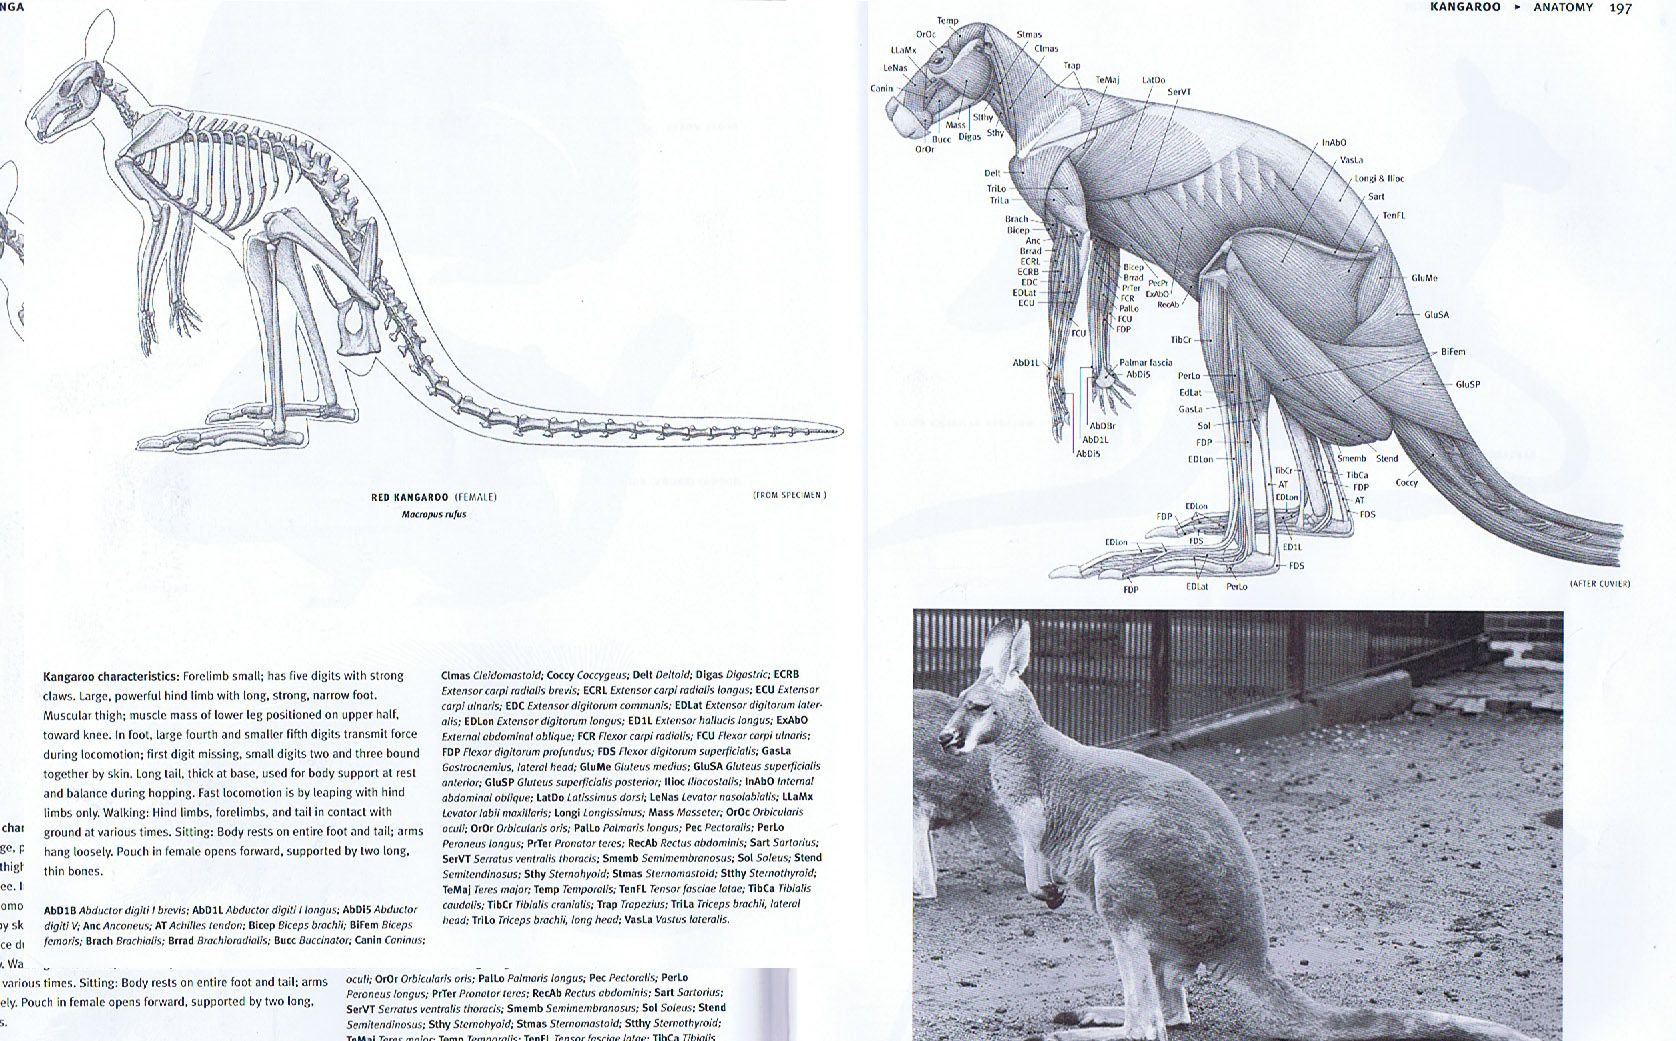 The Kangaroo Like The Giraffe Is Not An Archetypical Anything